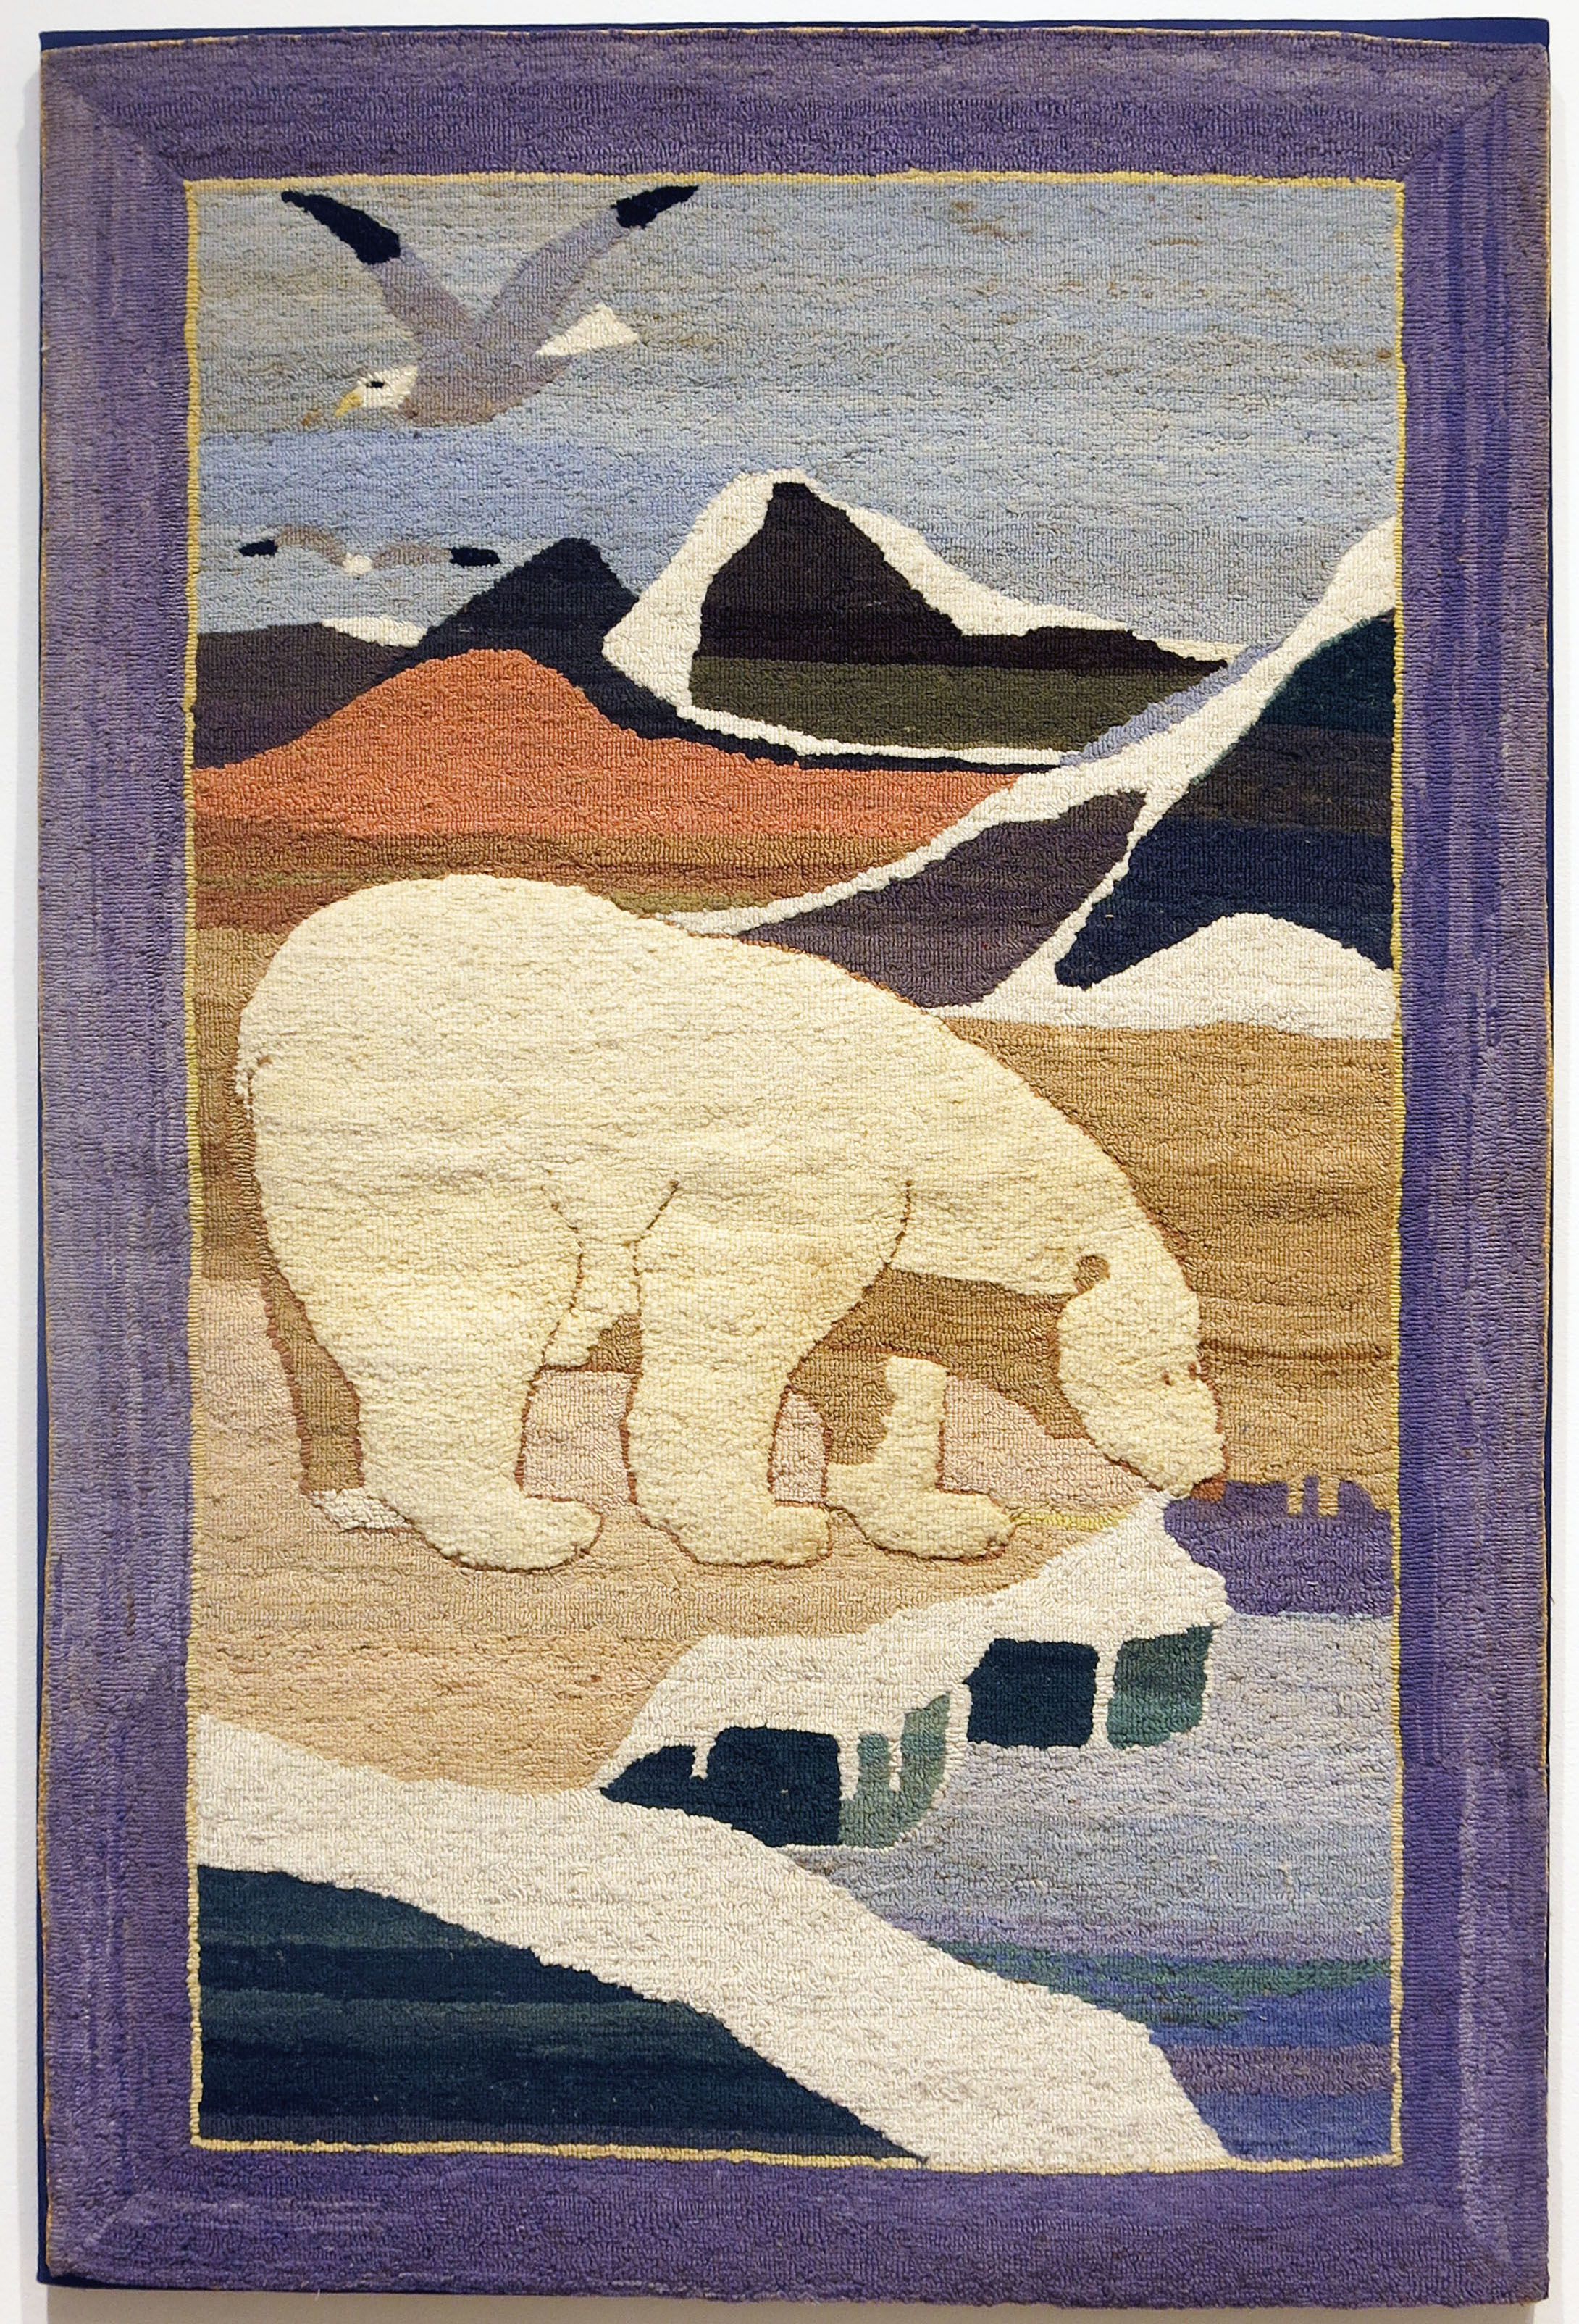 Anonymous, The Grenfell Mission,Vertical Polar Bear on Ice,c. 1939, silk, rayon, cotton, and velvet; dyed, 8 1/2h x 10 1/2w in.